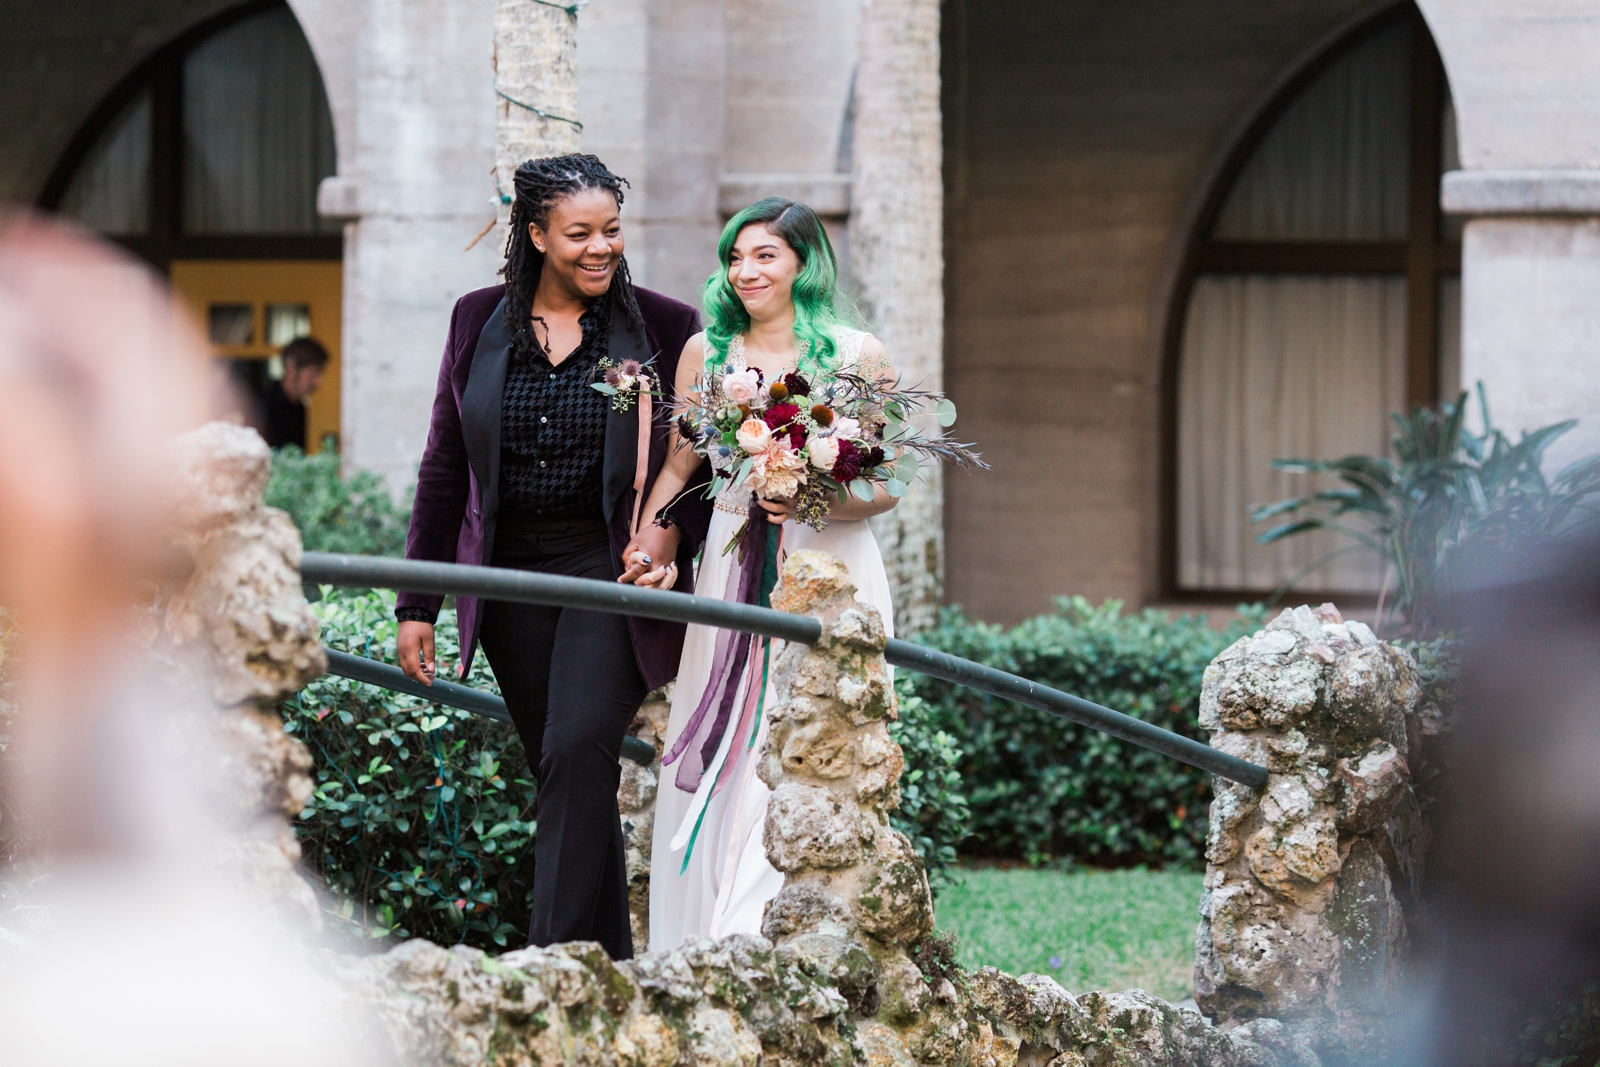 lightner_museum_st_augustine_wedding_photographer_shannon_griffin_0009.jpg